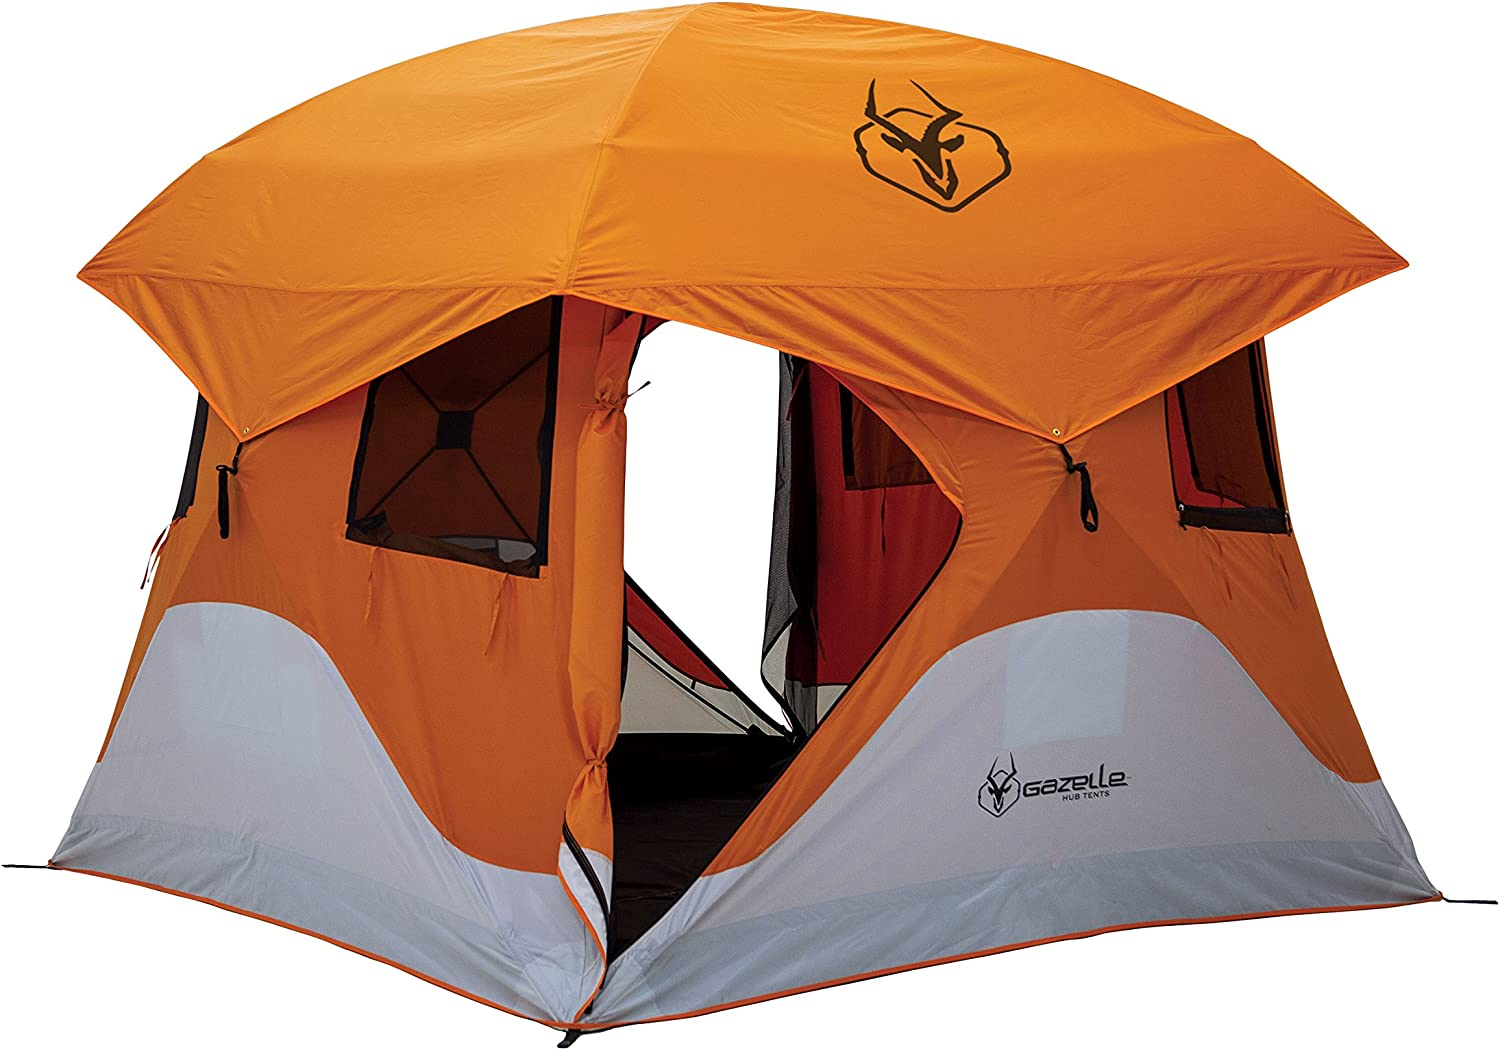 Gazelle 22272 T4 Portable Pop-Up Camping Tent